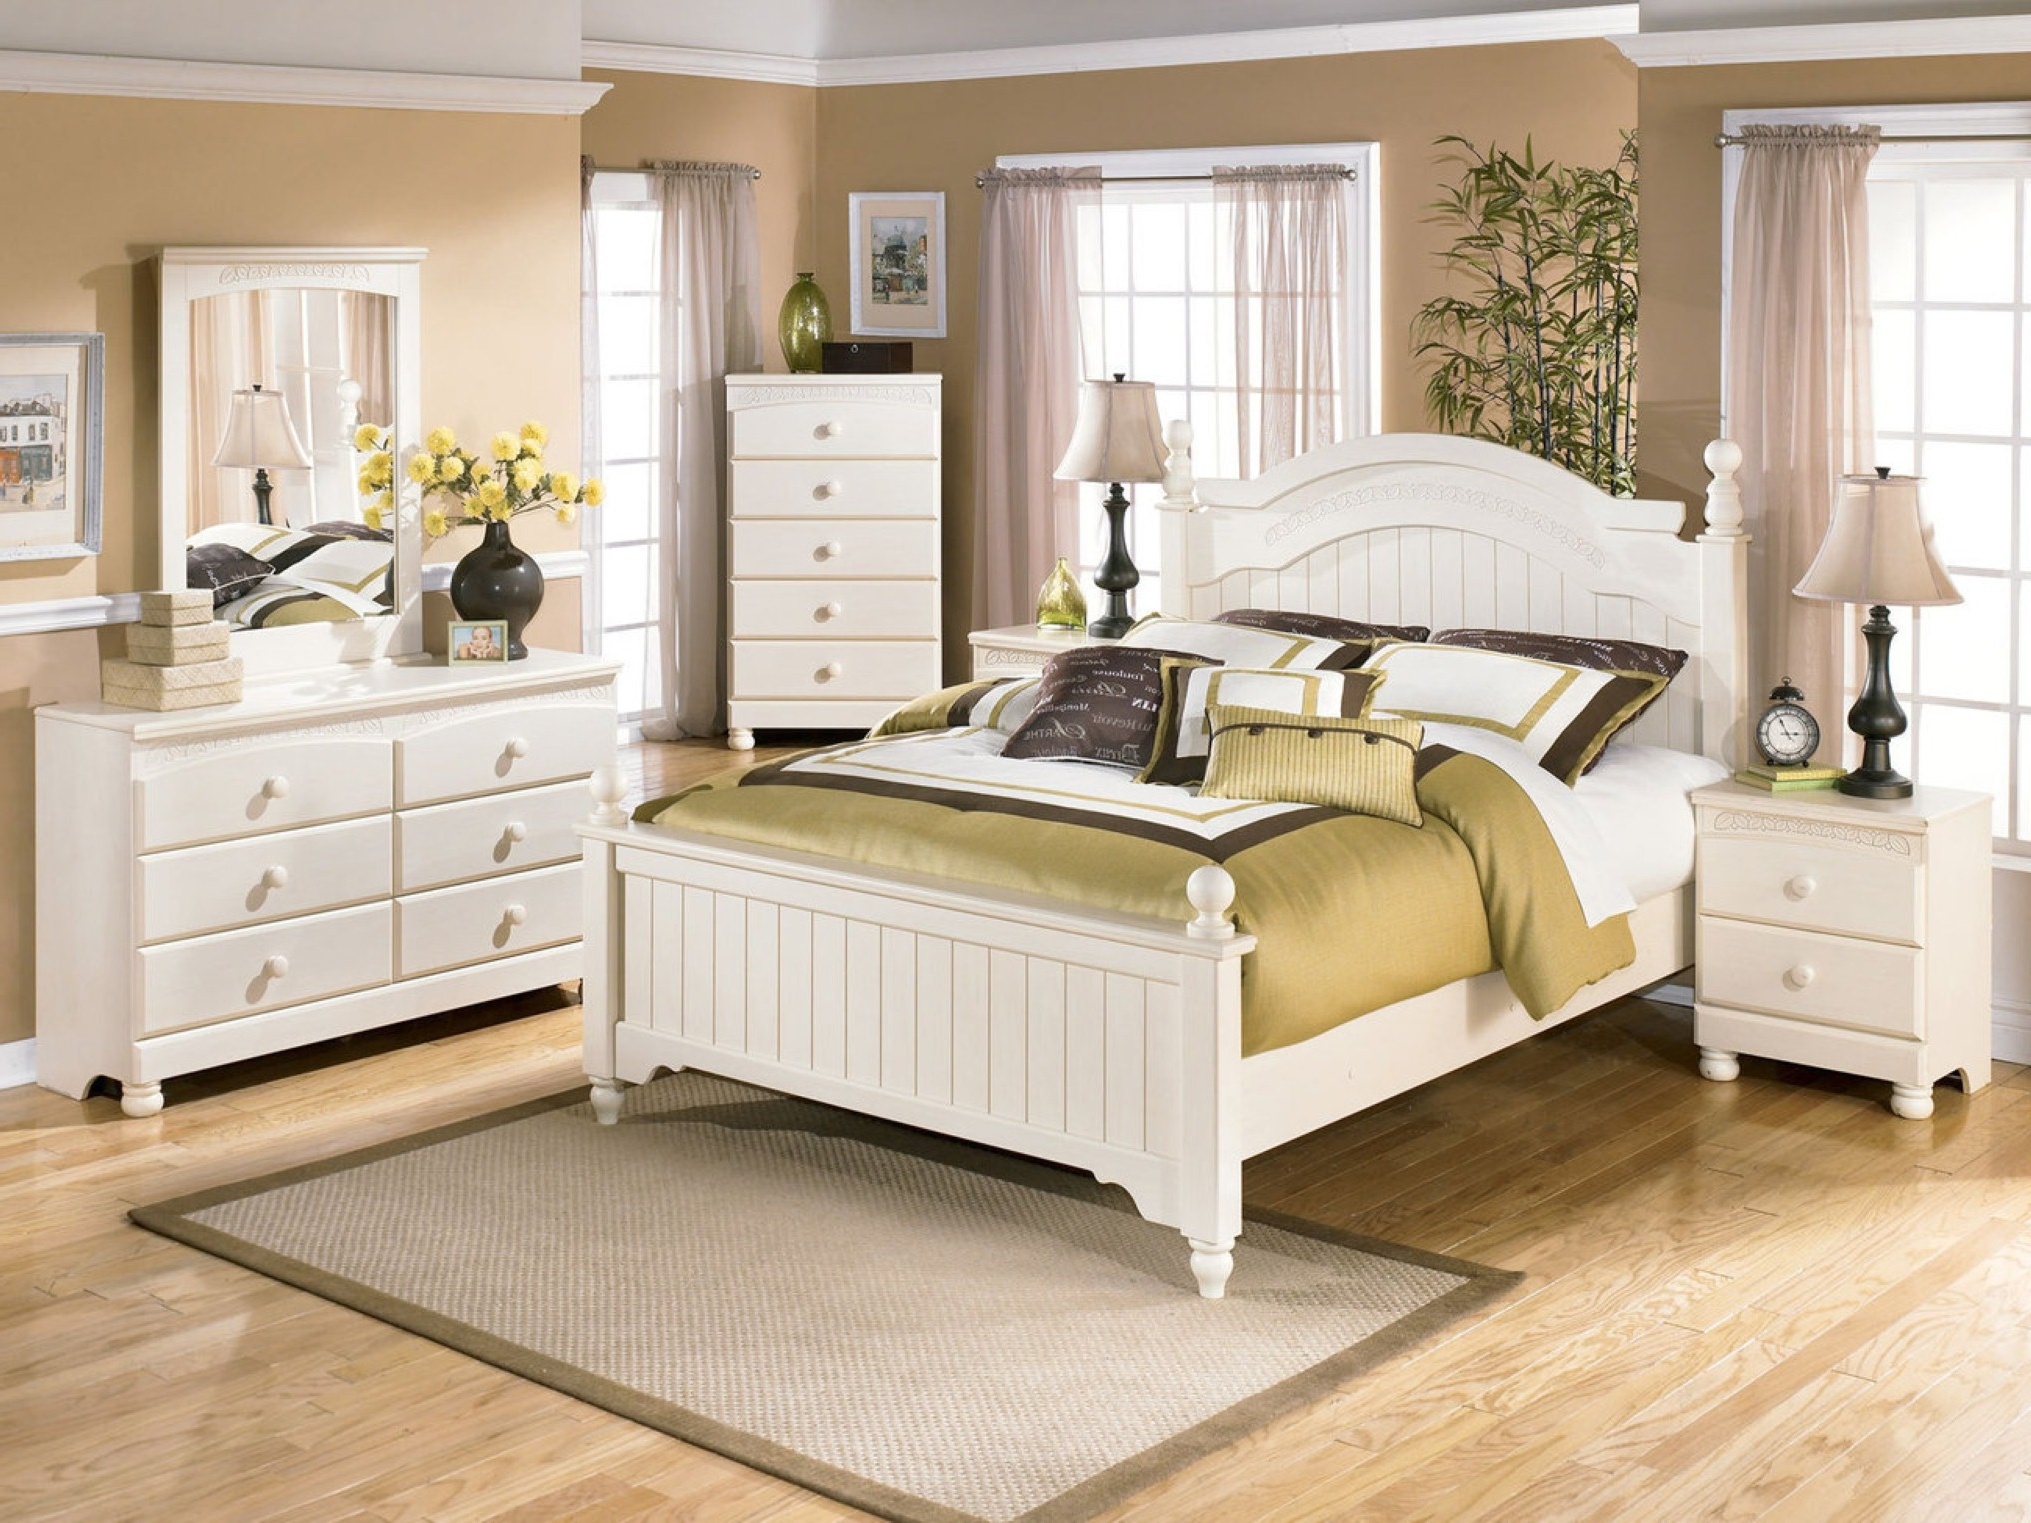 Neat Inspirational Cream Furniture As Fitted Bedroom Furniture To The Inspiration Design Ideas With The Best Examples Of The Bedroom (View 21 of 21)